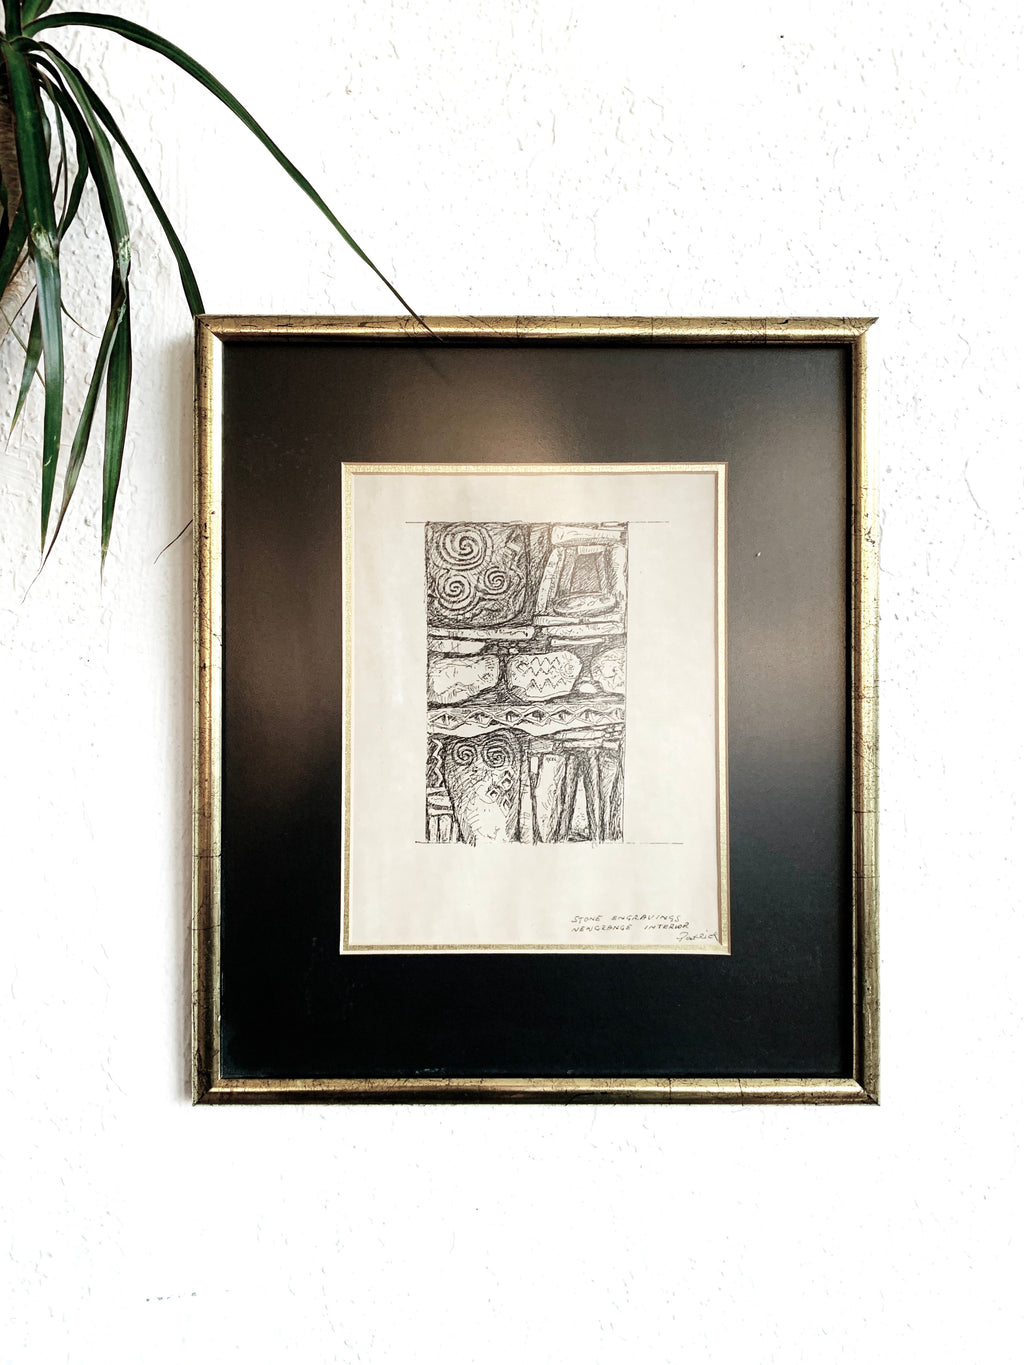 Vintage Framed Pen and Ink Drawing